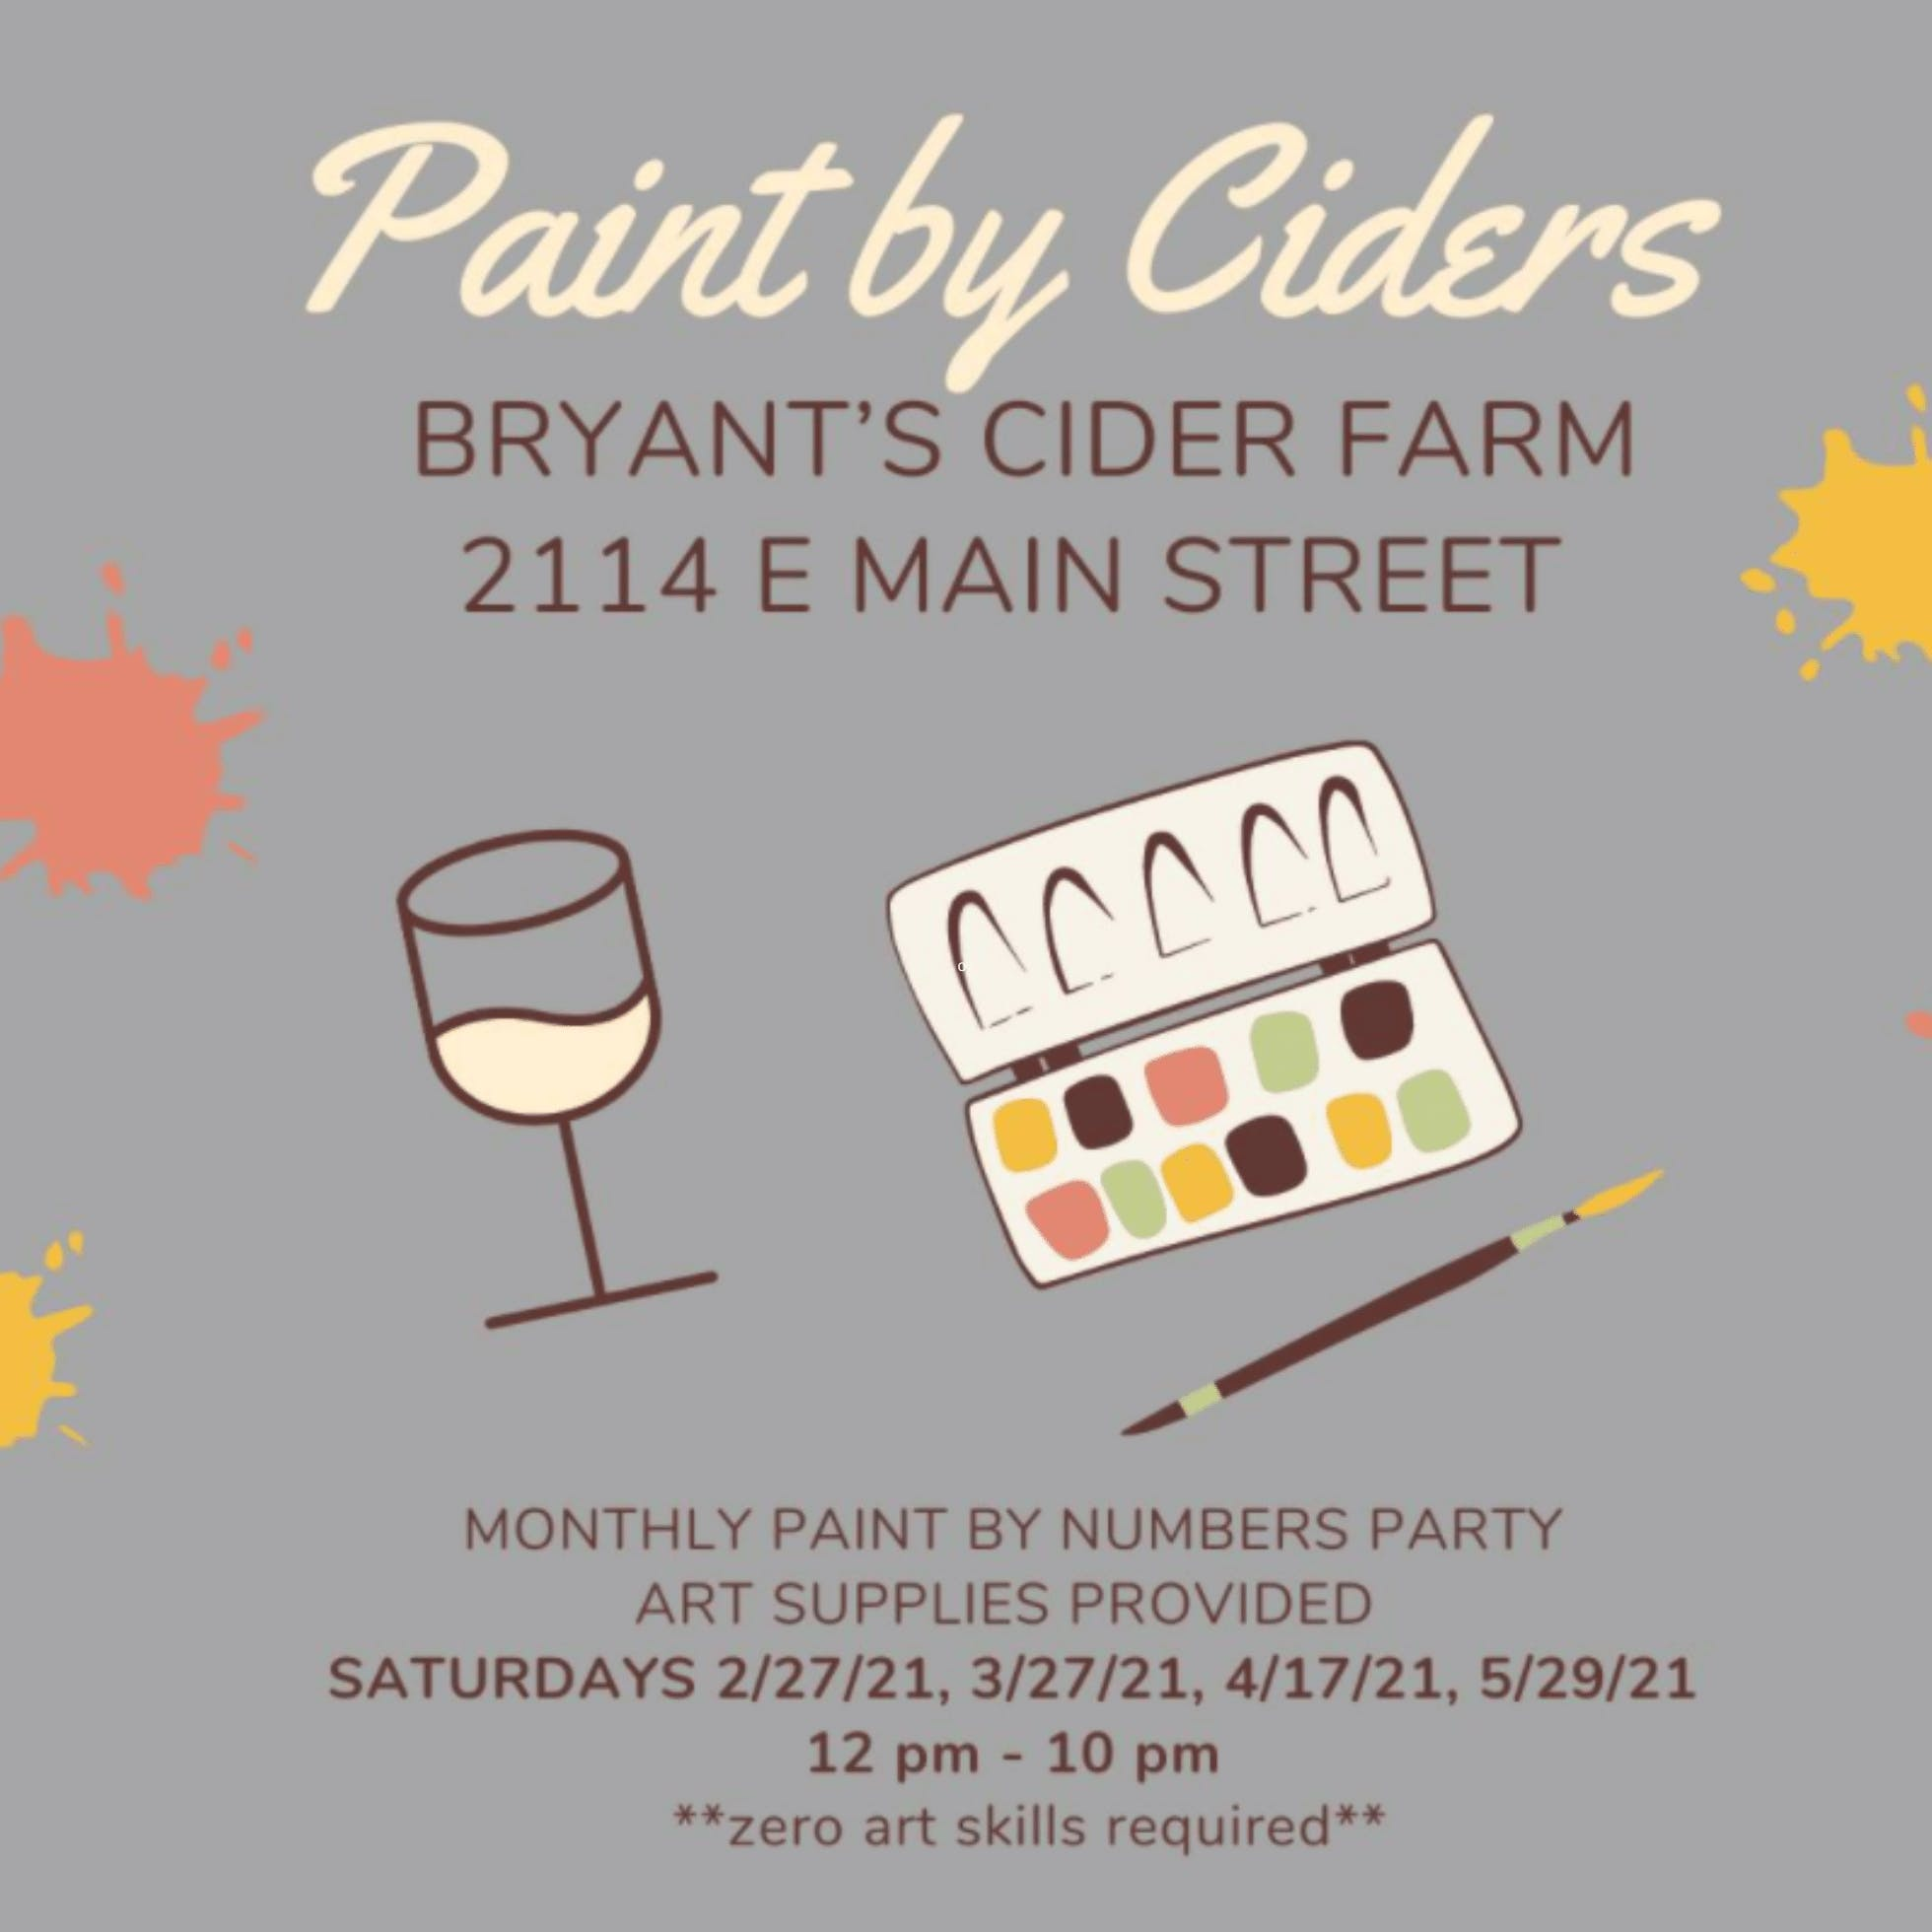 Paint by Ciders at Bryants Cider RVA on February 27 2021